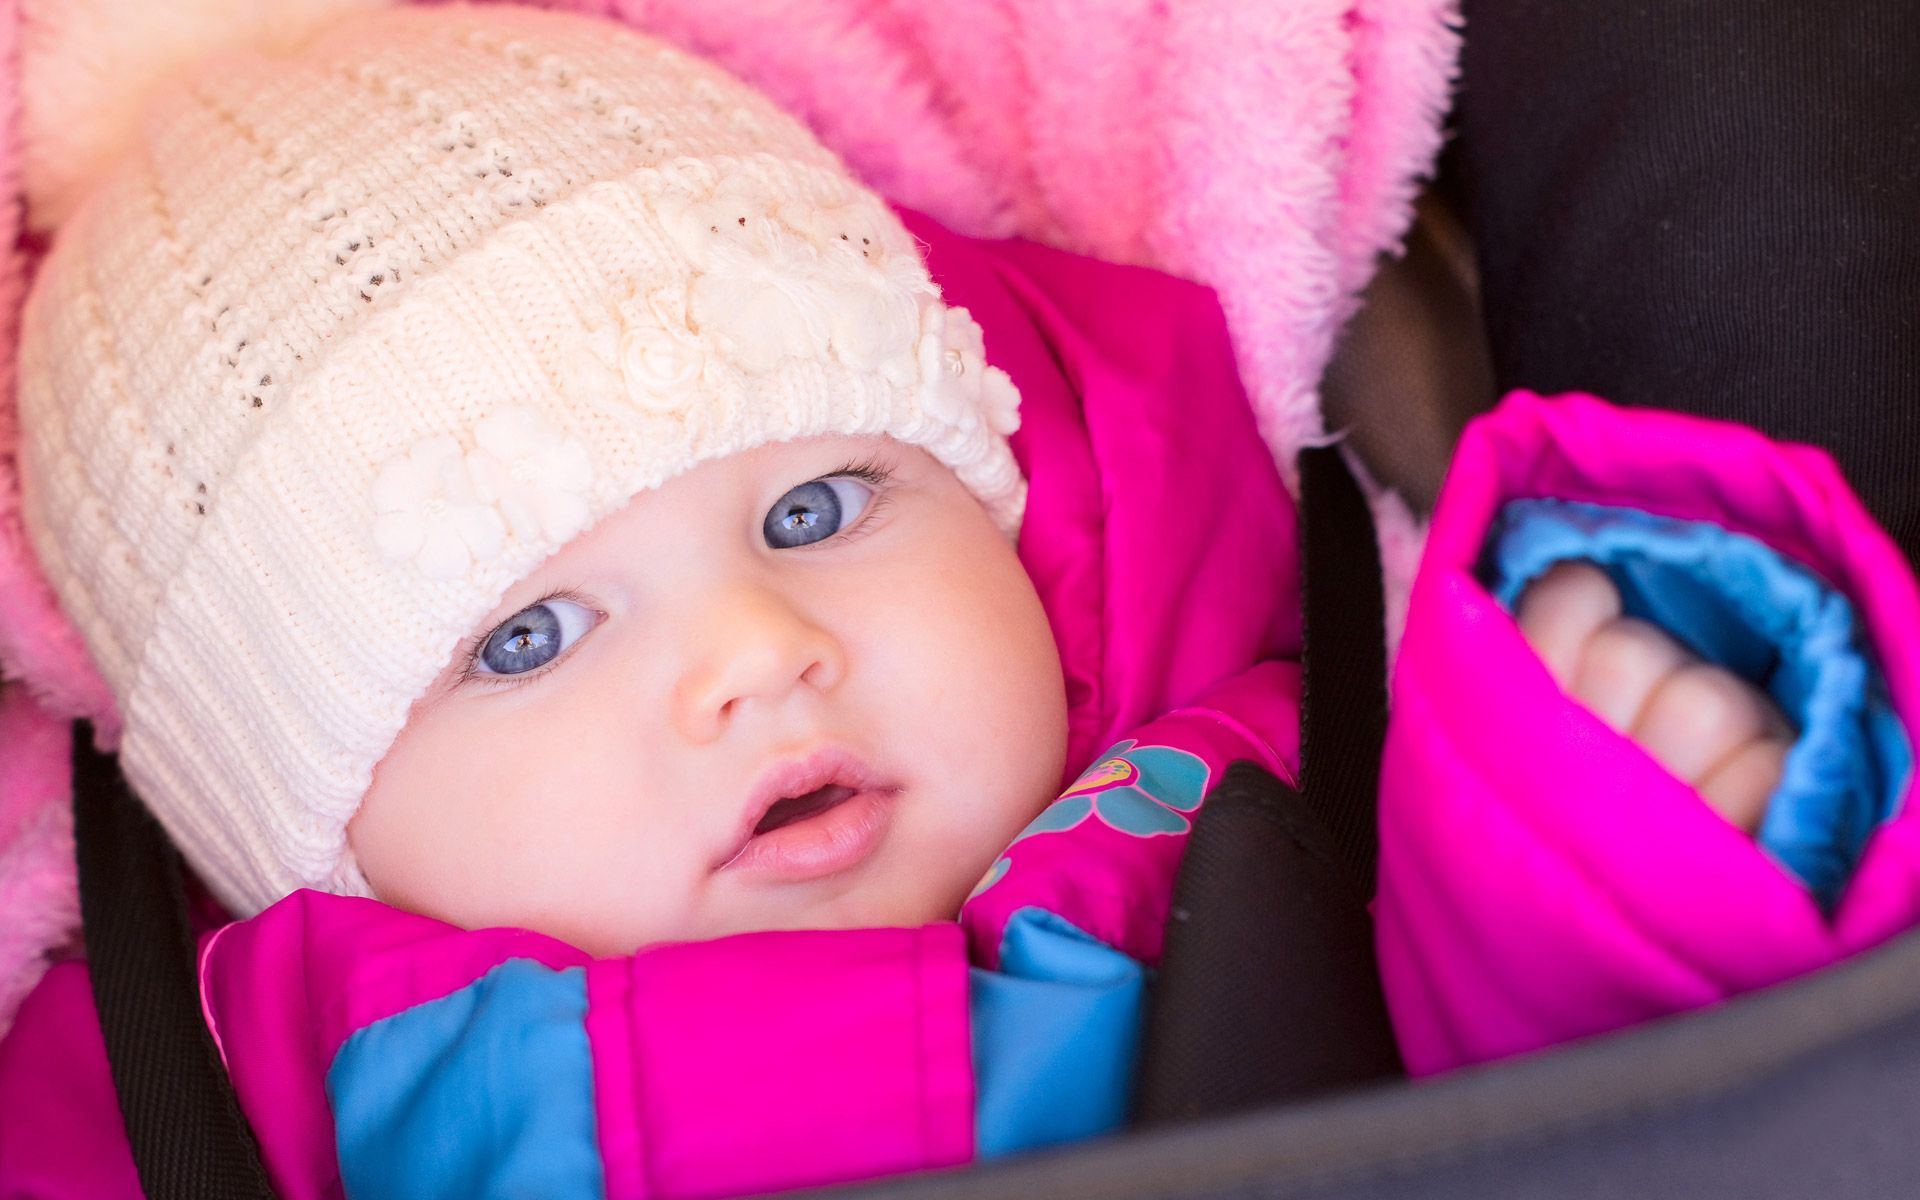 Cute Baby With Hat Wallpapers: Cute Baby HD Wallpaper